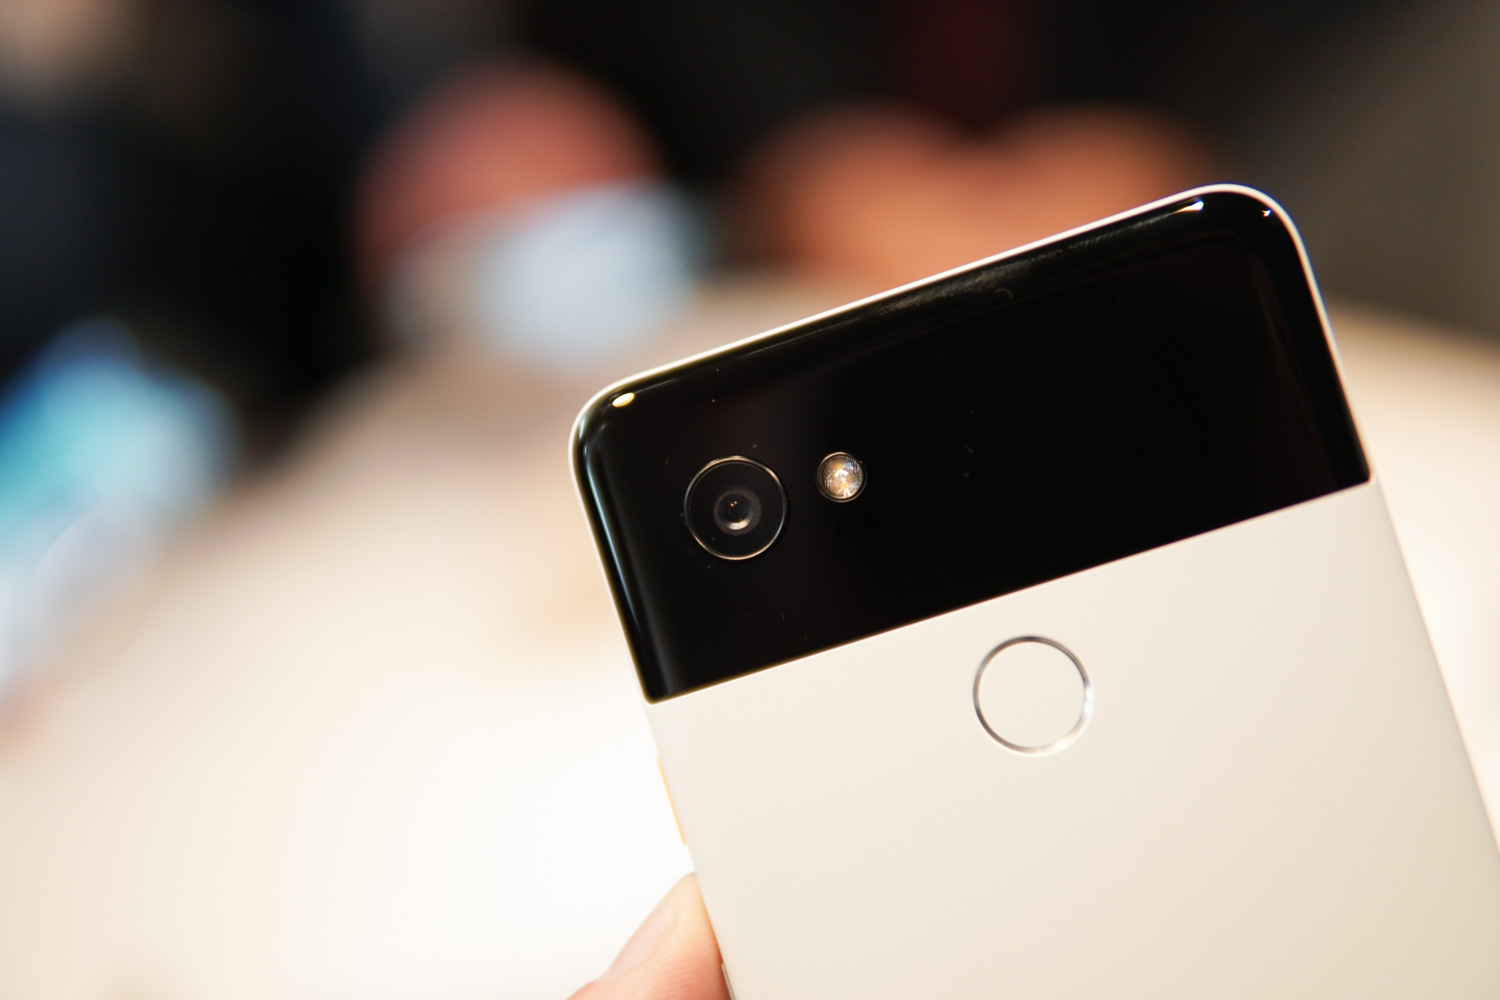 Pixel 2 Phones Use eSIM, so They Won't Even Need a SIM on